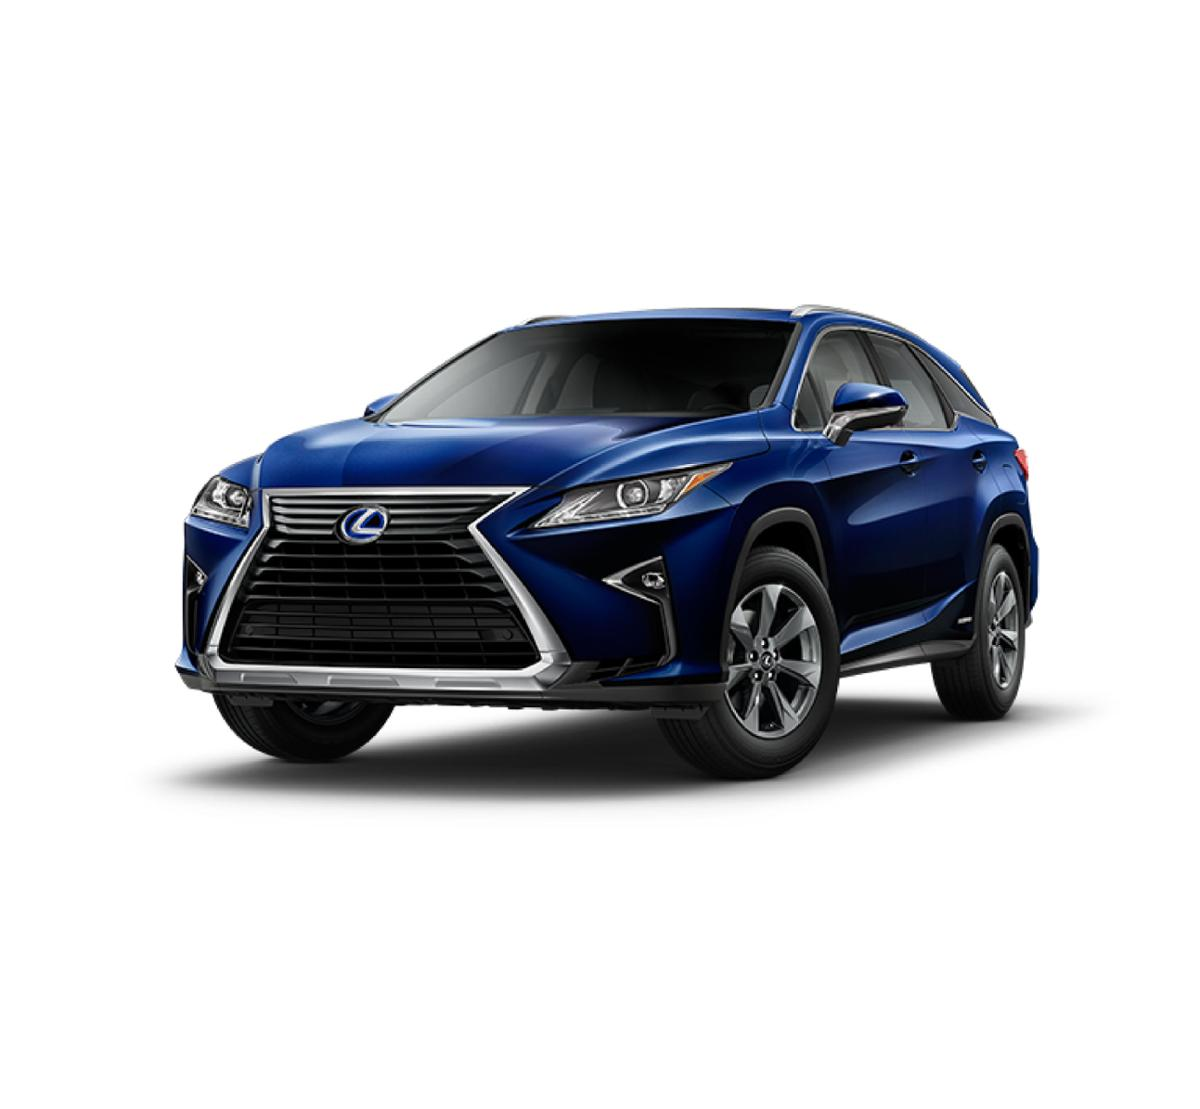 2018 Lexus RX 450hL Vehicle Photo in Las Vegas, NV 89146